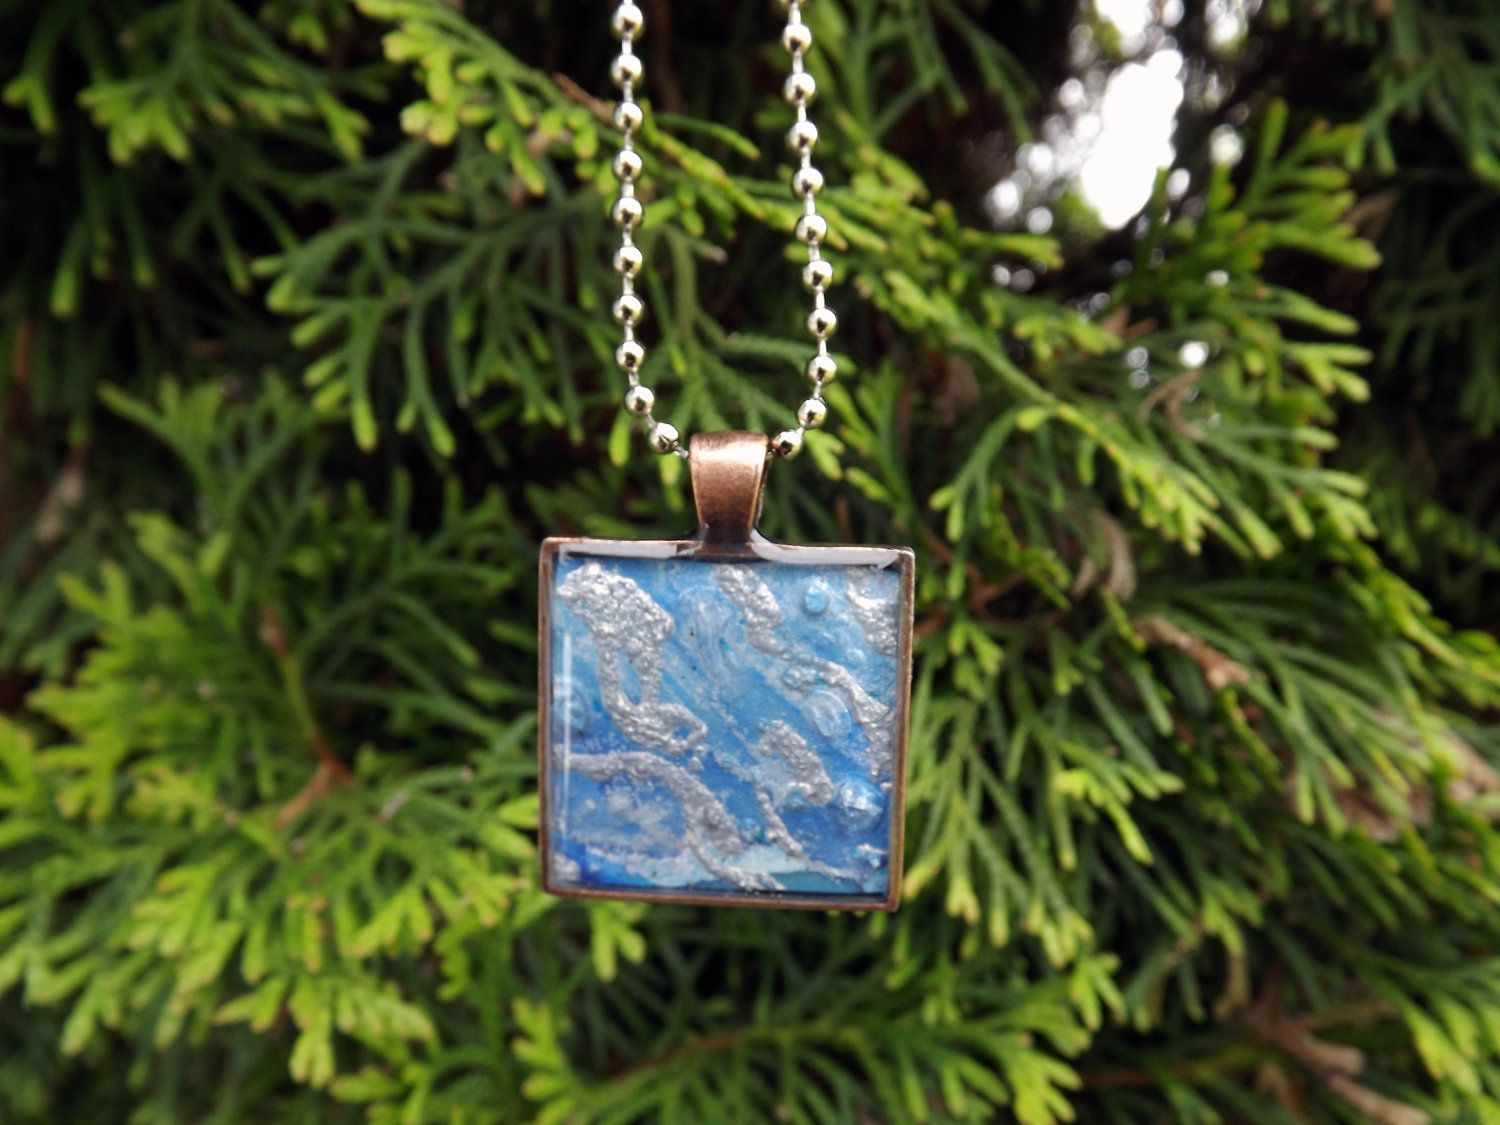 Elegant Blue and Silver abstract Jewelry Pendant necklace -Three Demensional with Resin - wearable art by Terripoppinscrafts. $12.00, via Etsy.